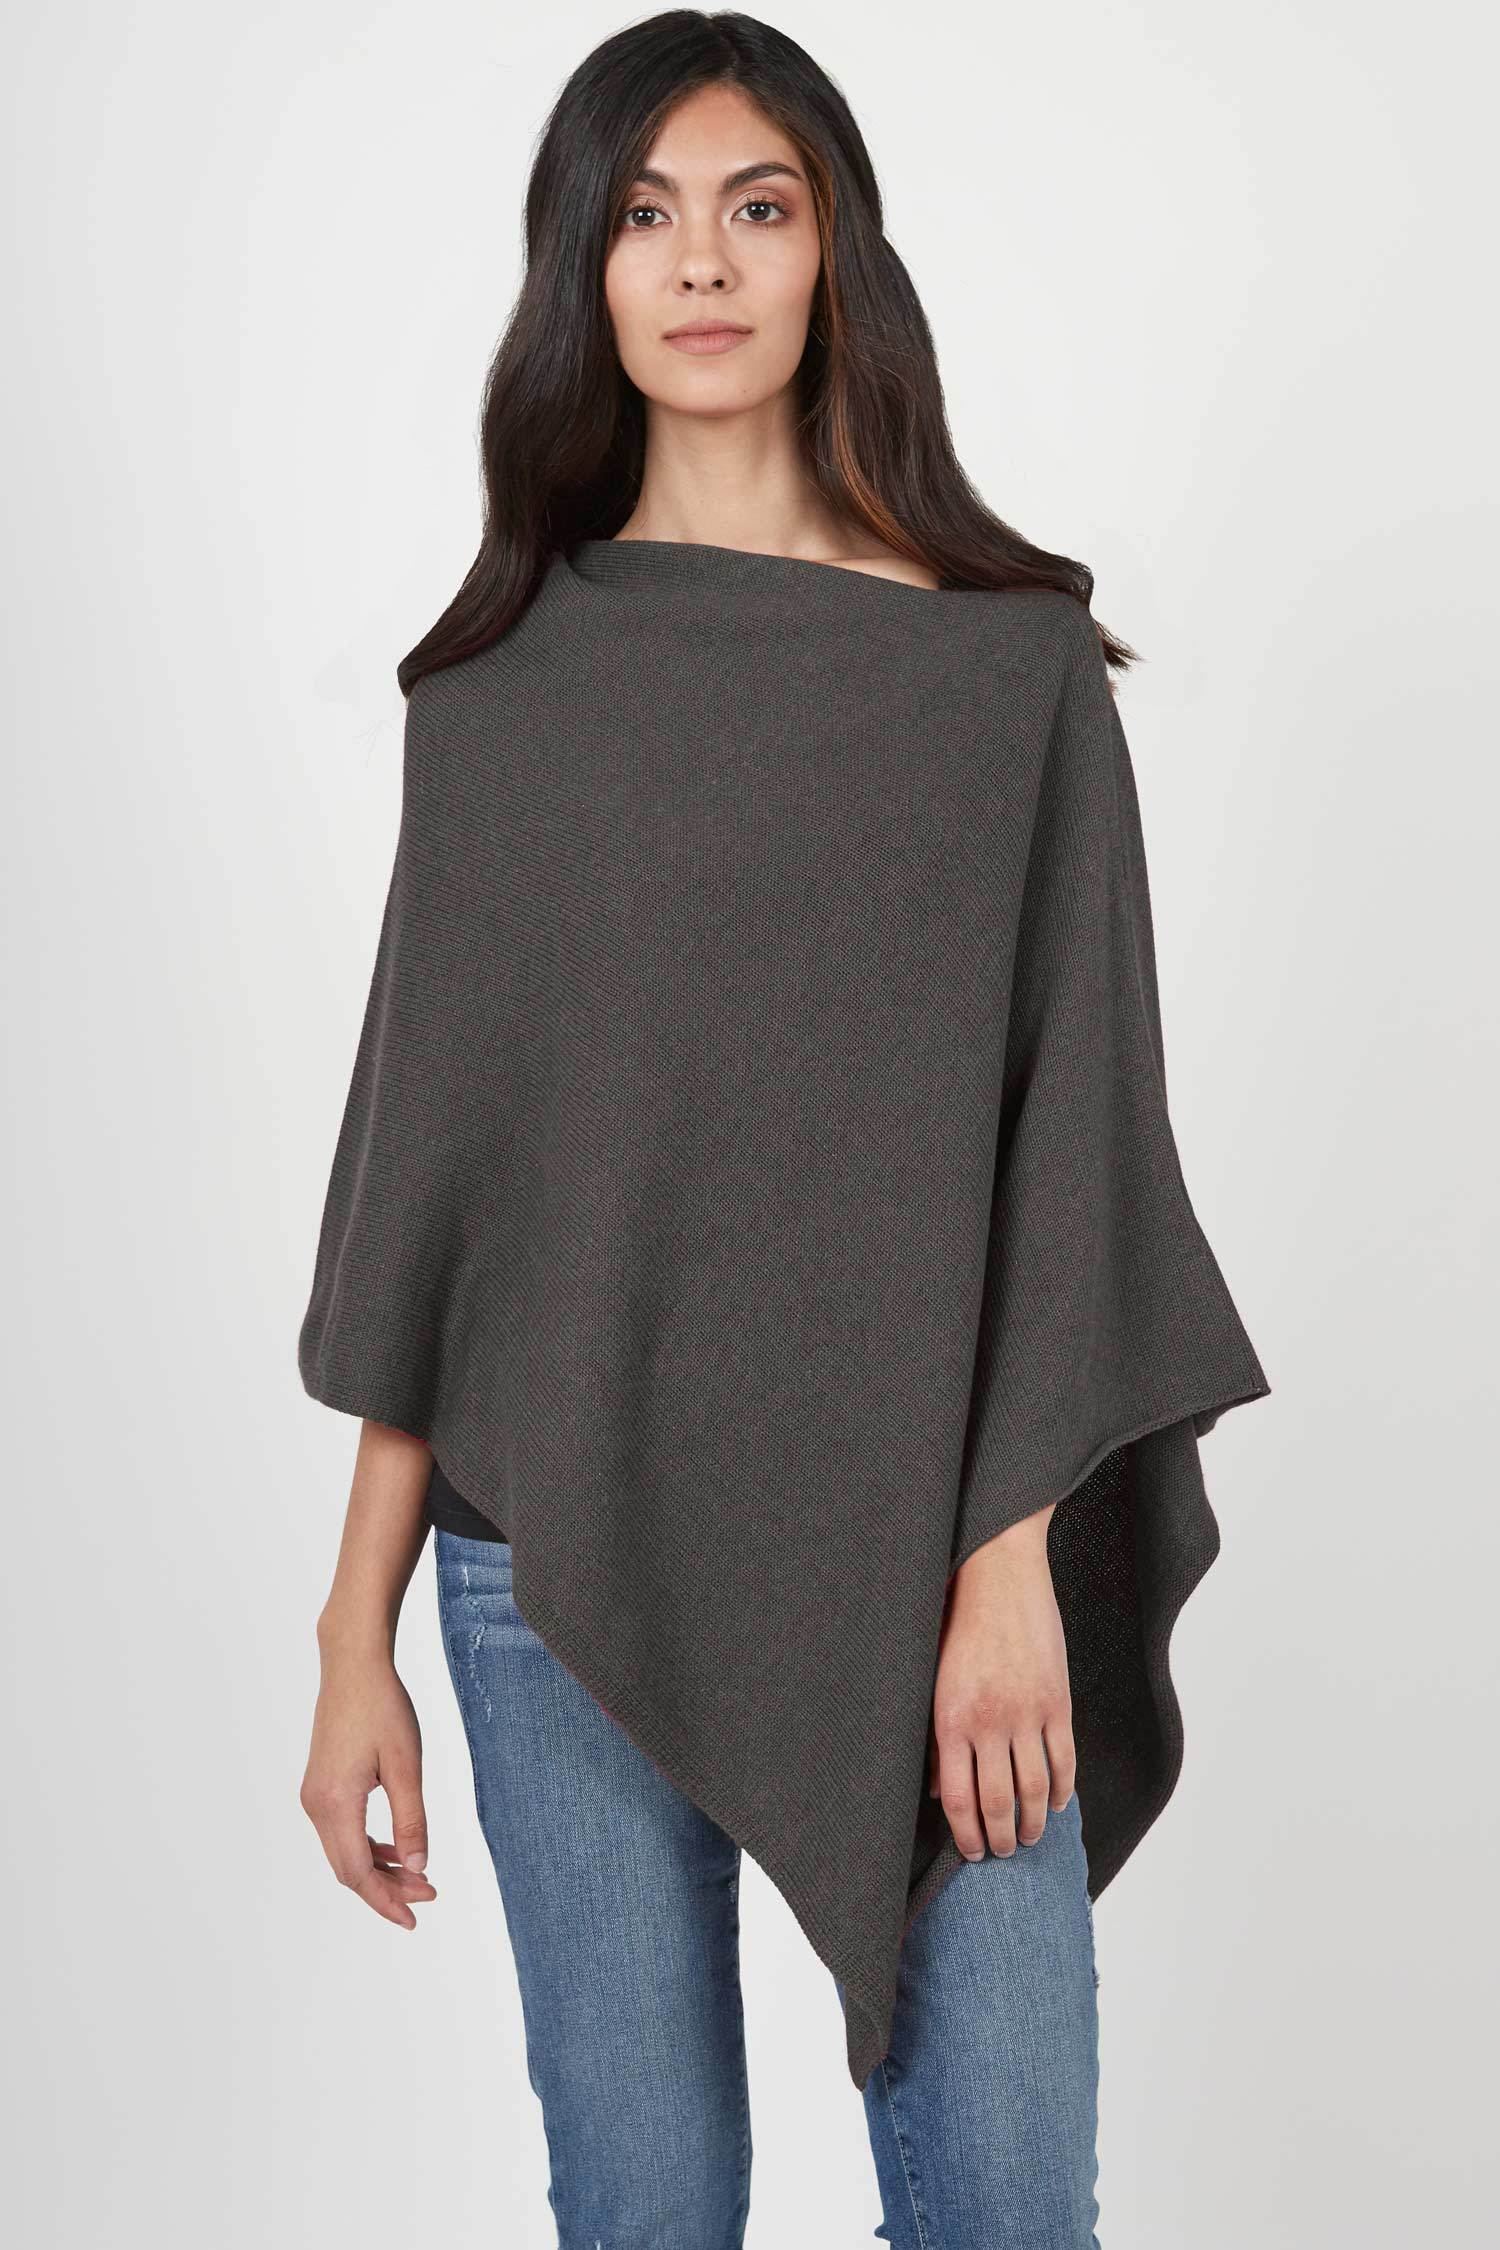 Organic Cotton Poncho for Women | Essential Knit Poncho | Charcoal Gray